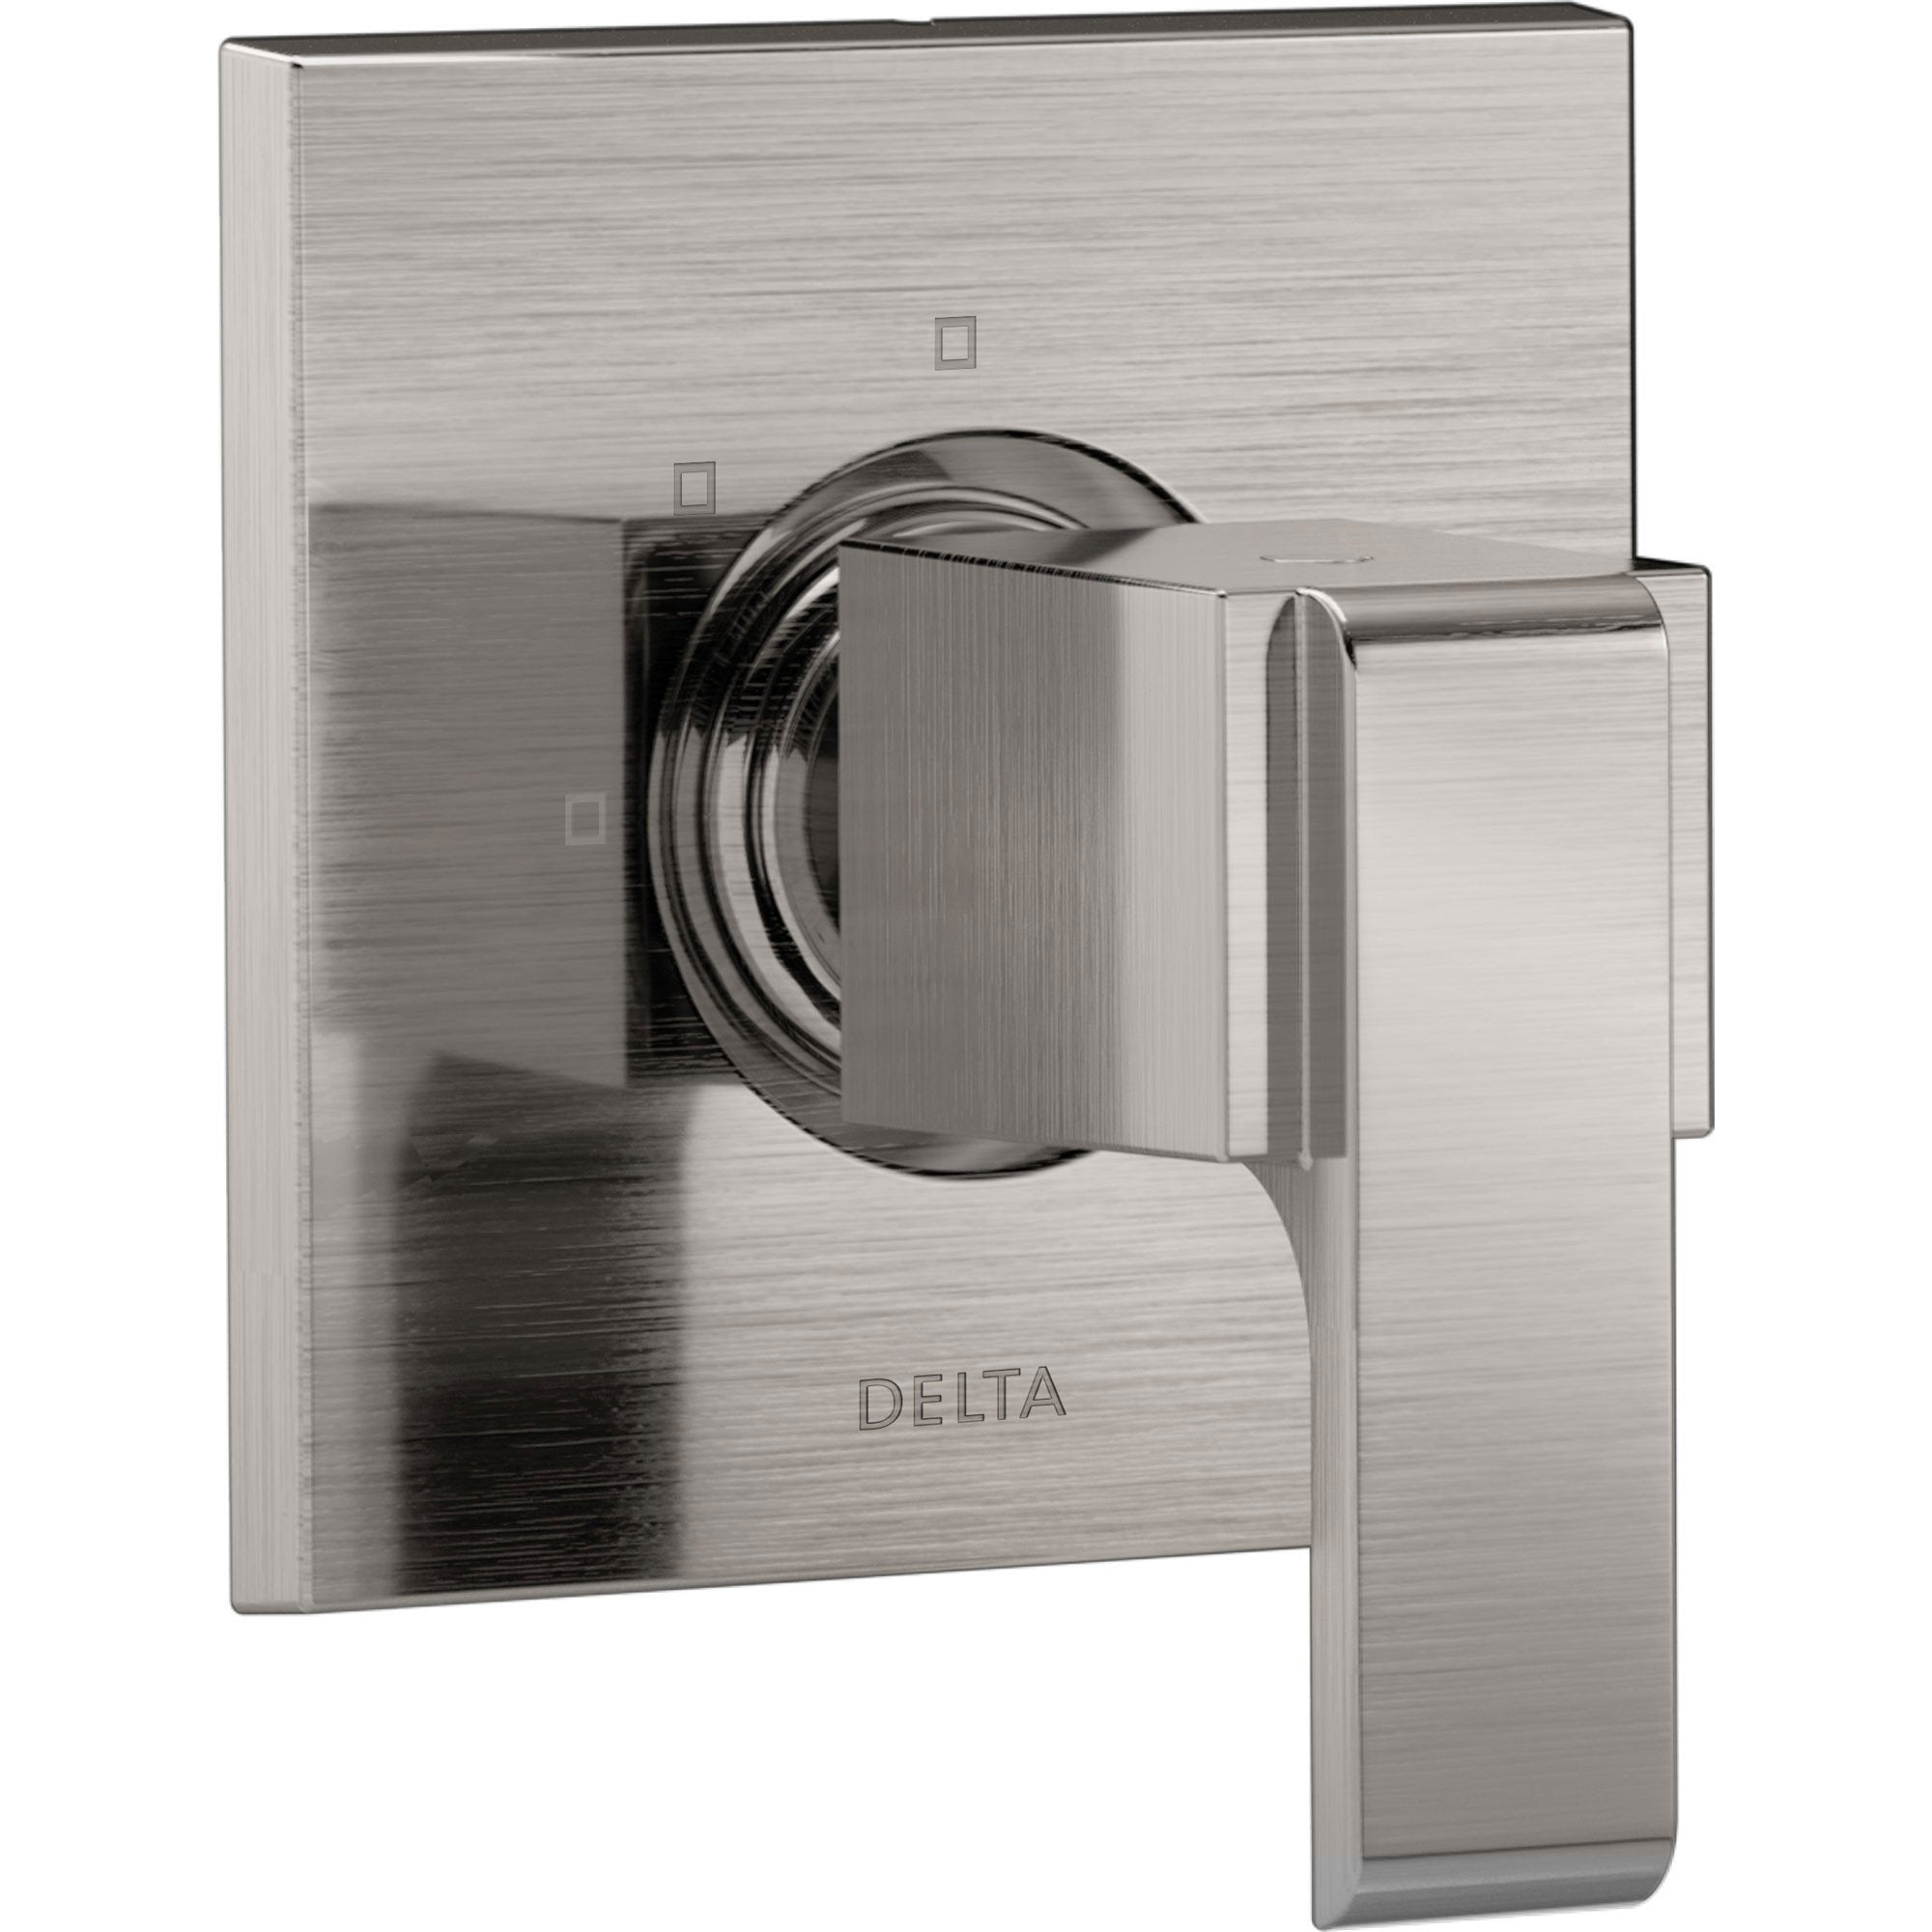 Delta Ara Modern Square Stainless Steel Finish Single Handle 3-Setting 2-Port Shower Diverter Fixture INCLUDES Rough-in Valve D1293V